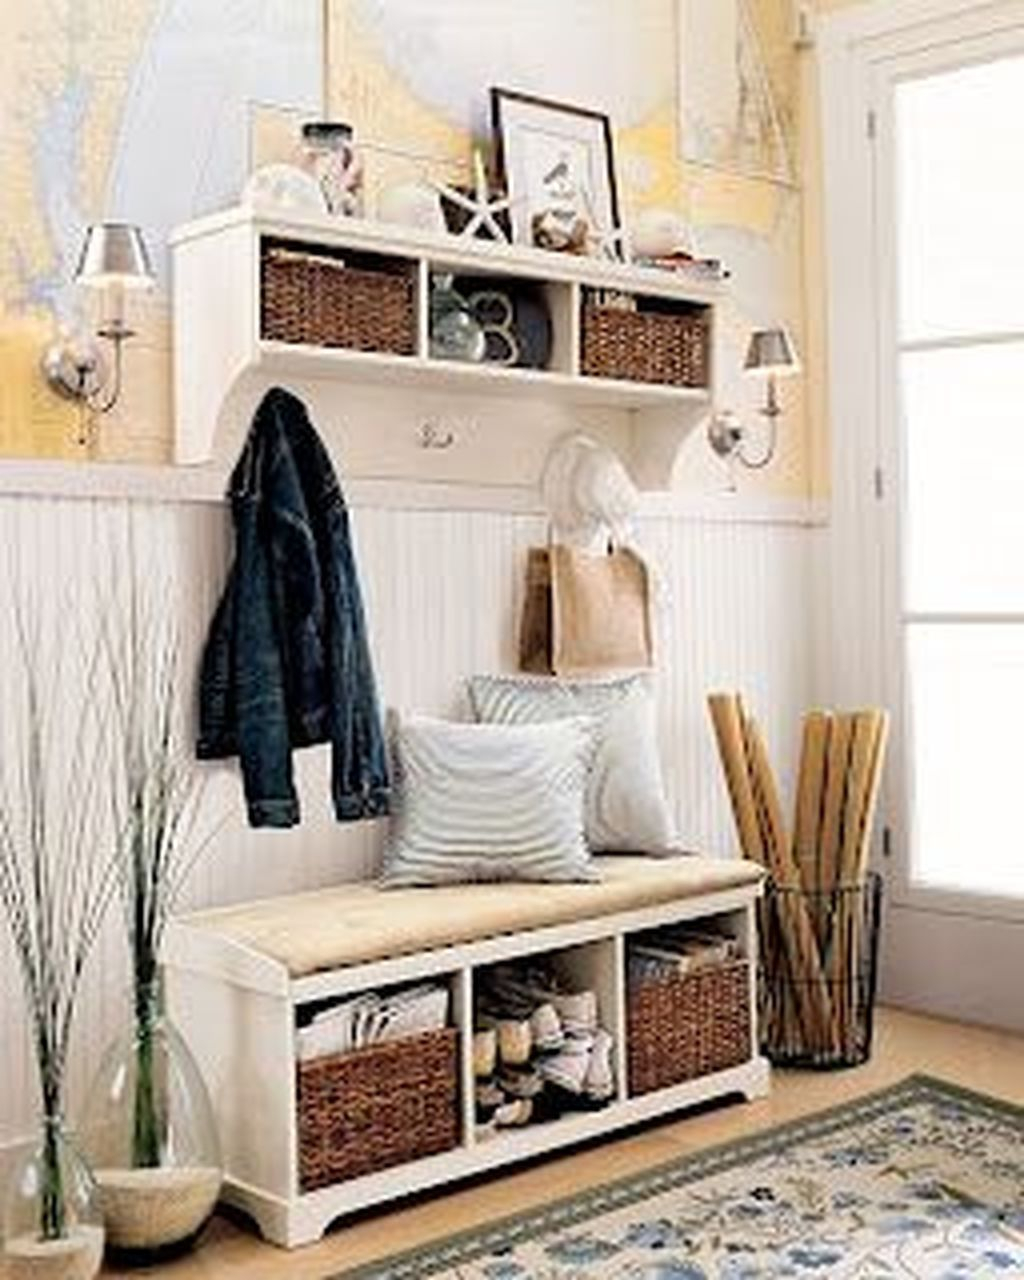 Delightful Mudroom Storage Design Ideas To Have Soon13